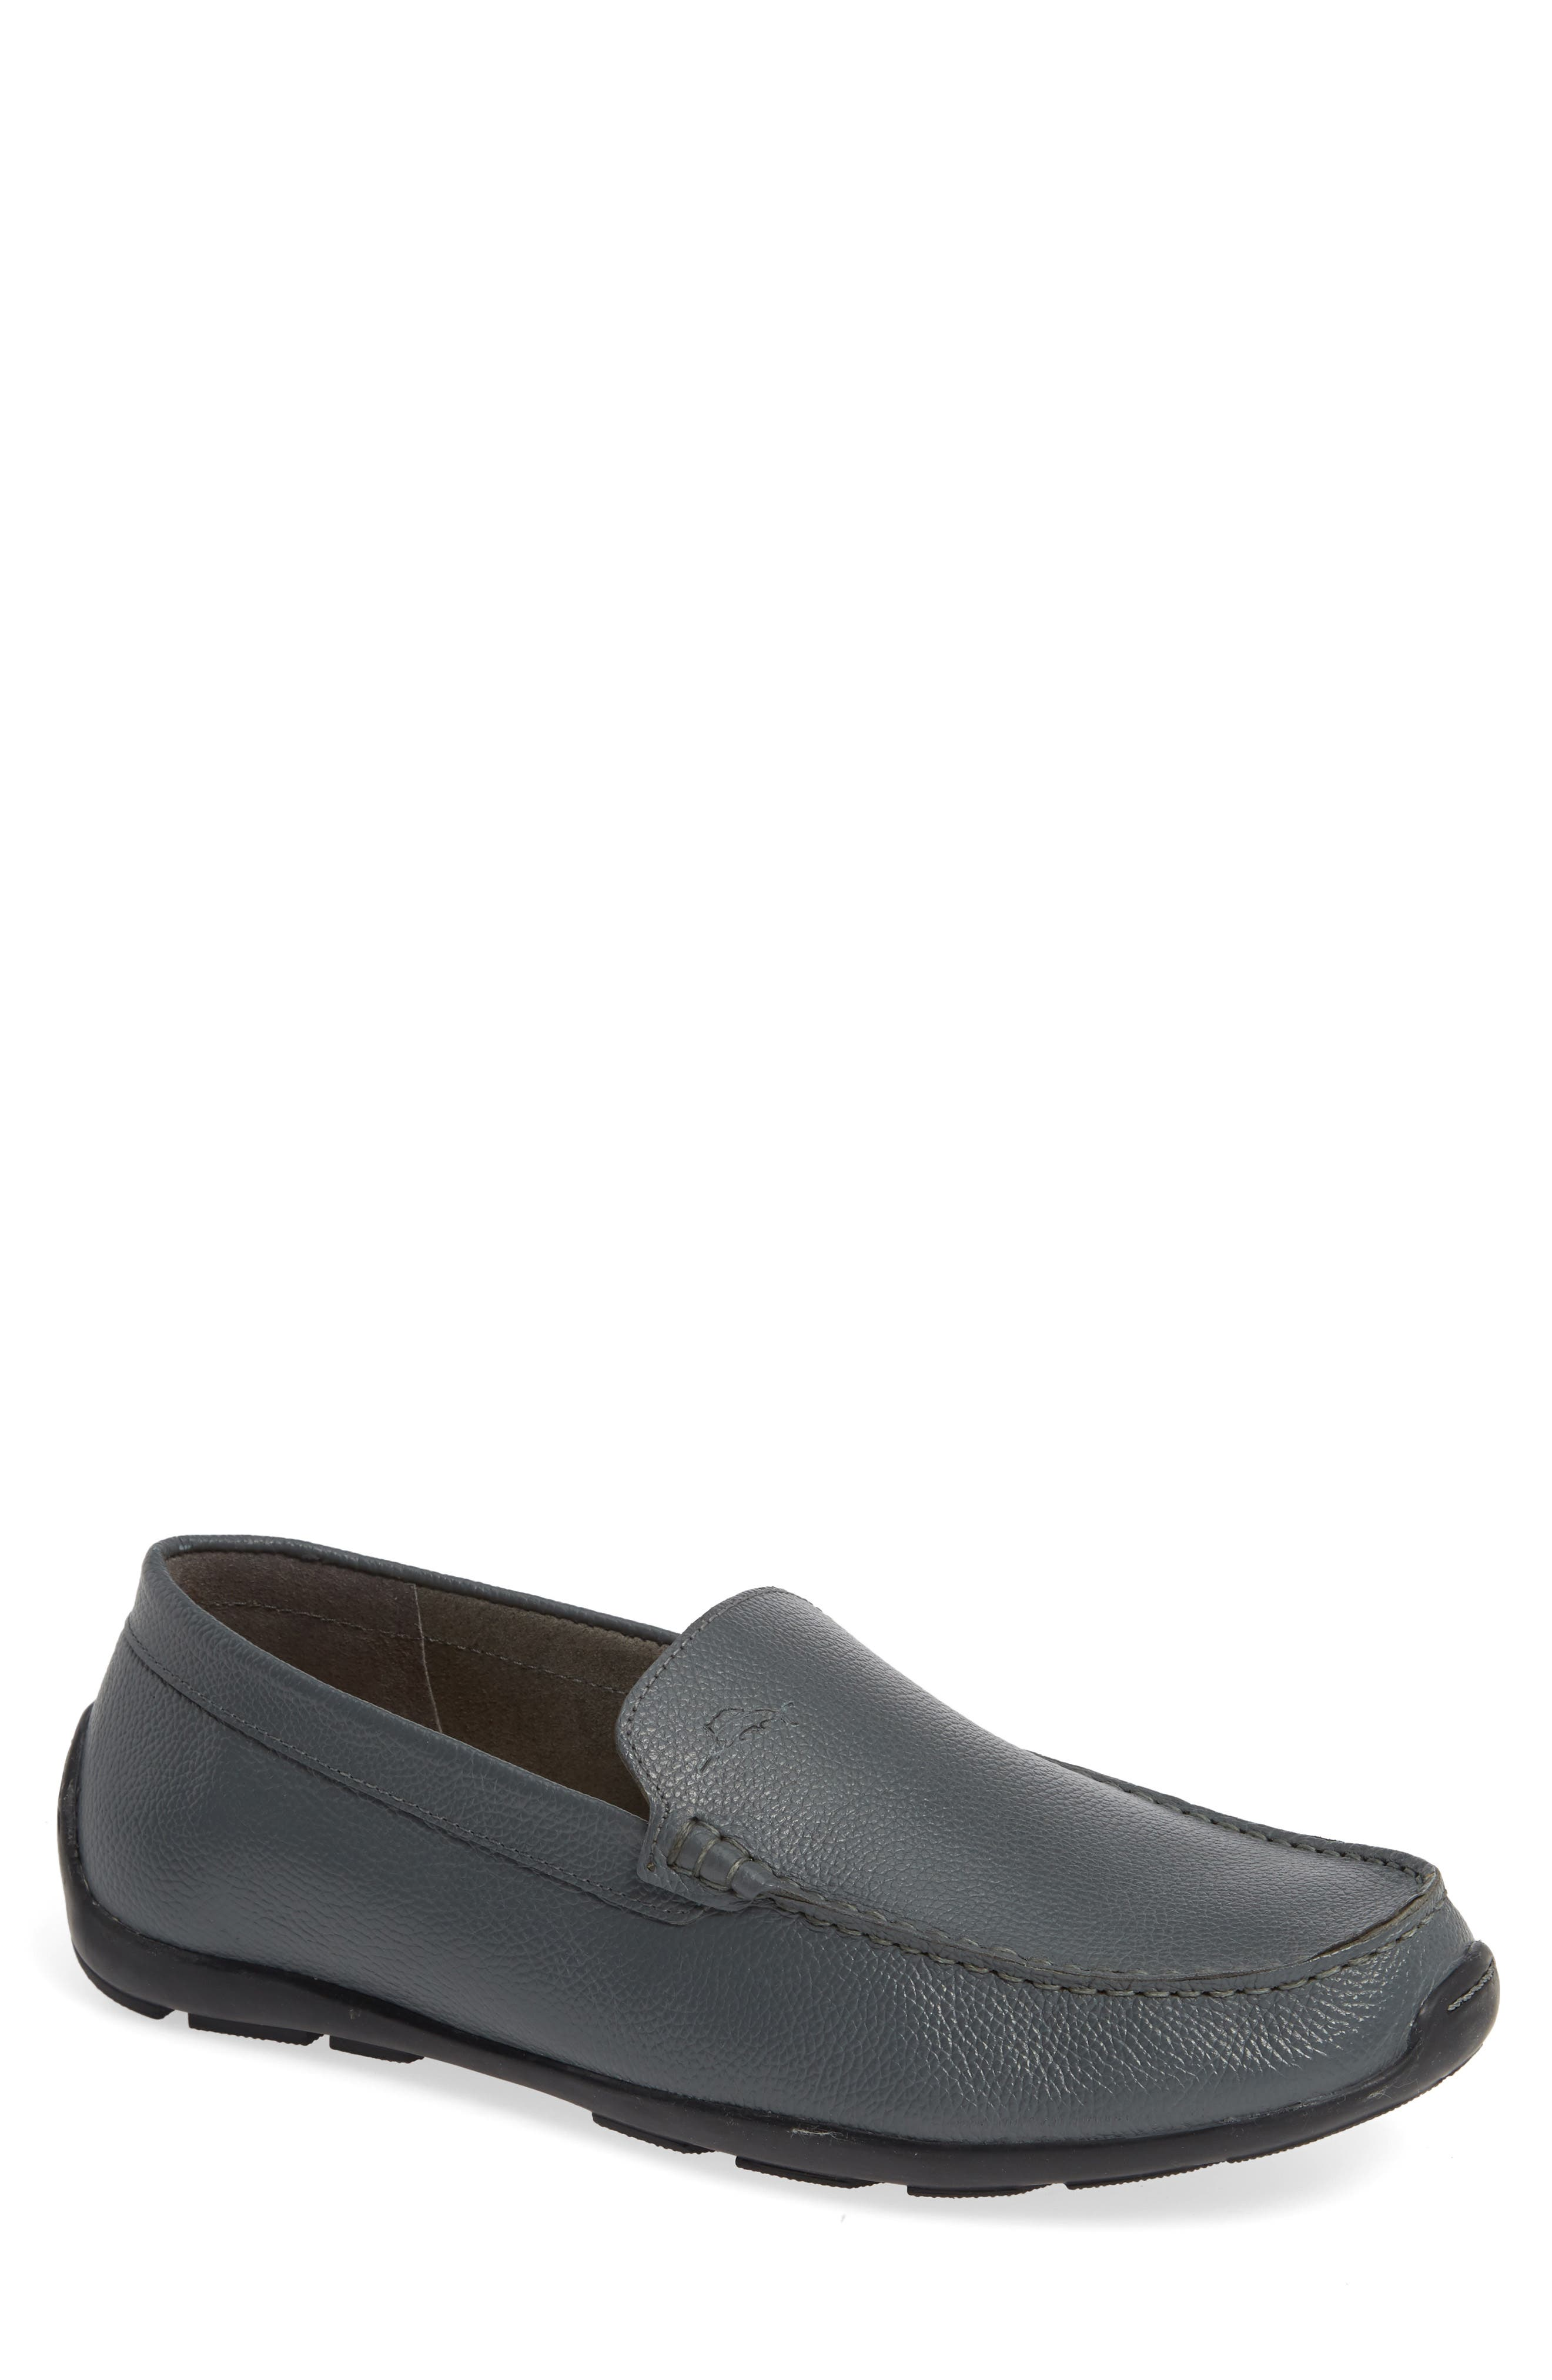 Orion Venetian Loafer,                             Main thumbnail 1, color,                             GREY TUMBLED LEATHER